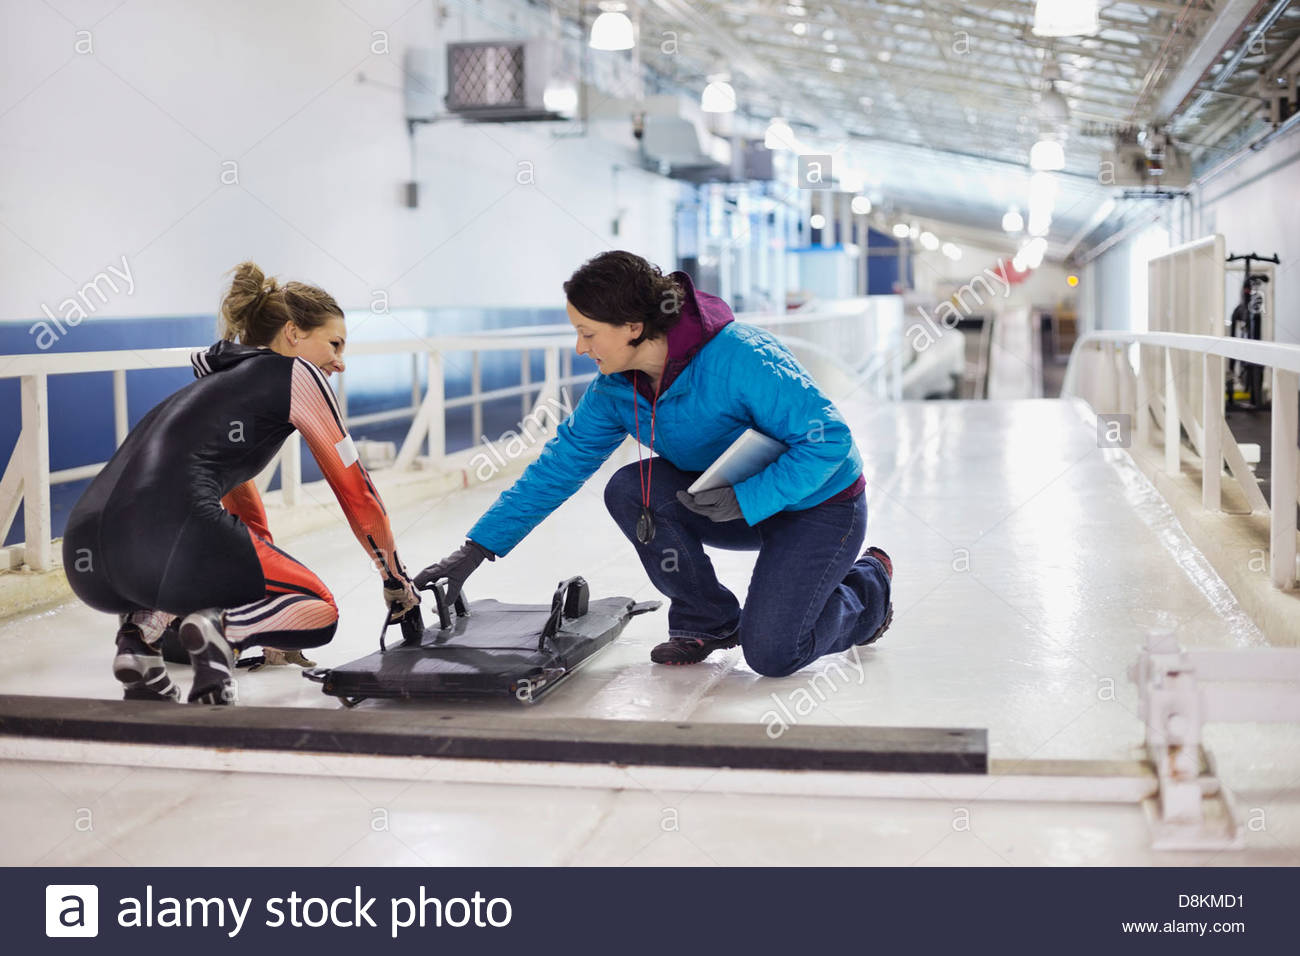 Female coach explaining technique to skeleton athlete - Stock Image